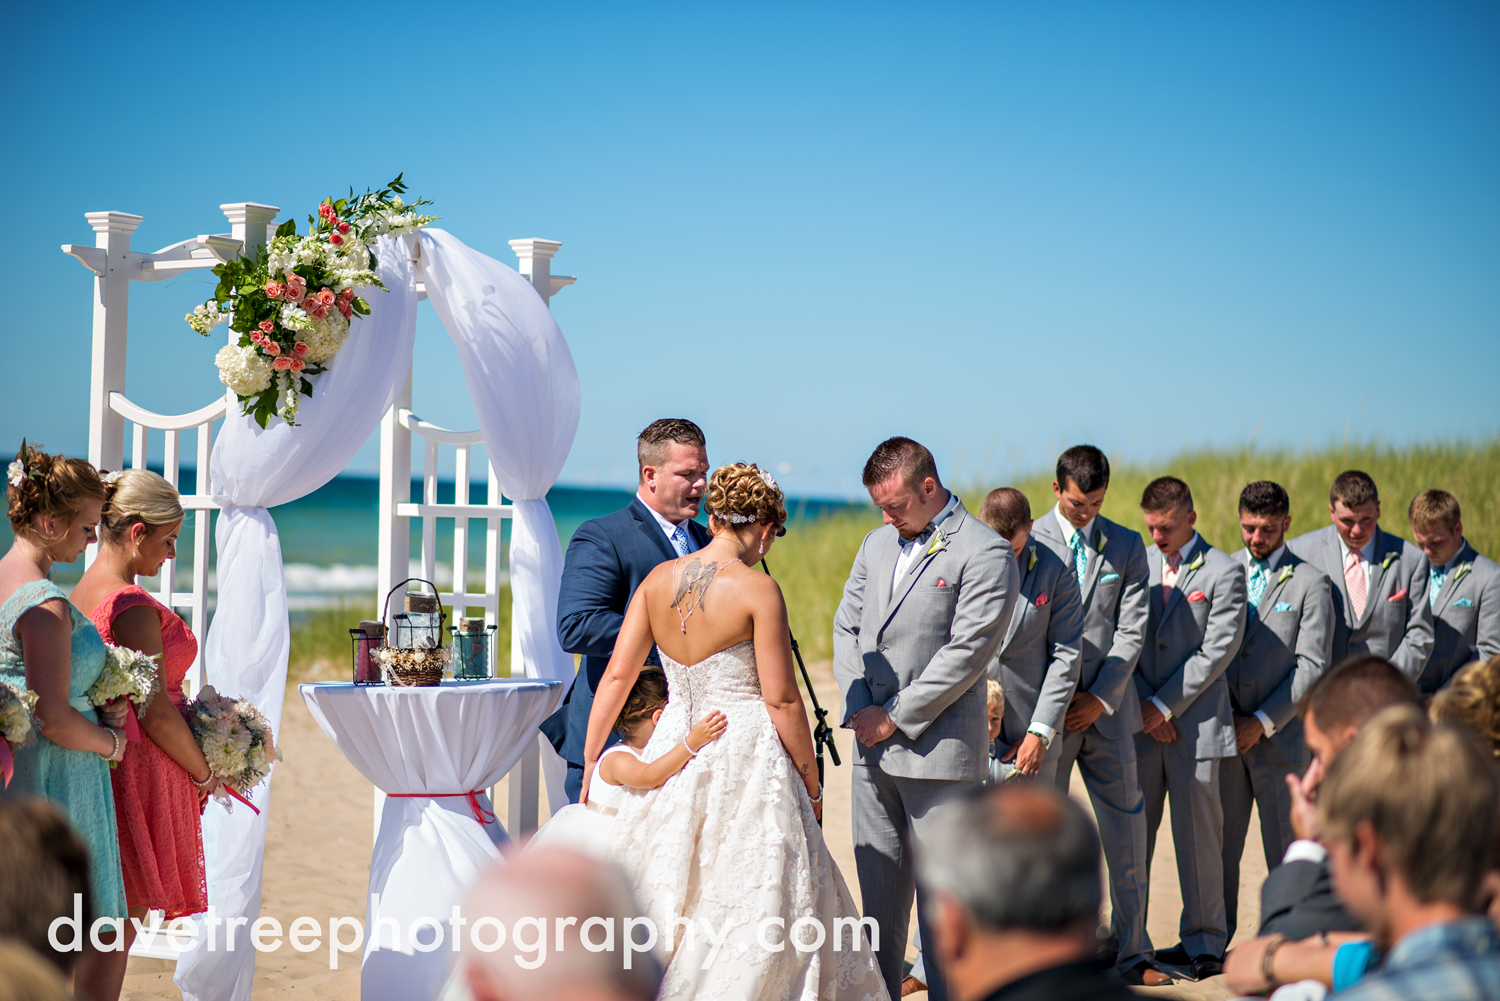 veranda_wedding_photographer_st_joseph_wedding_44.jpg